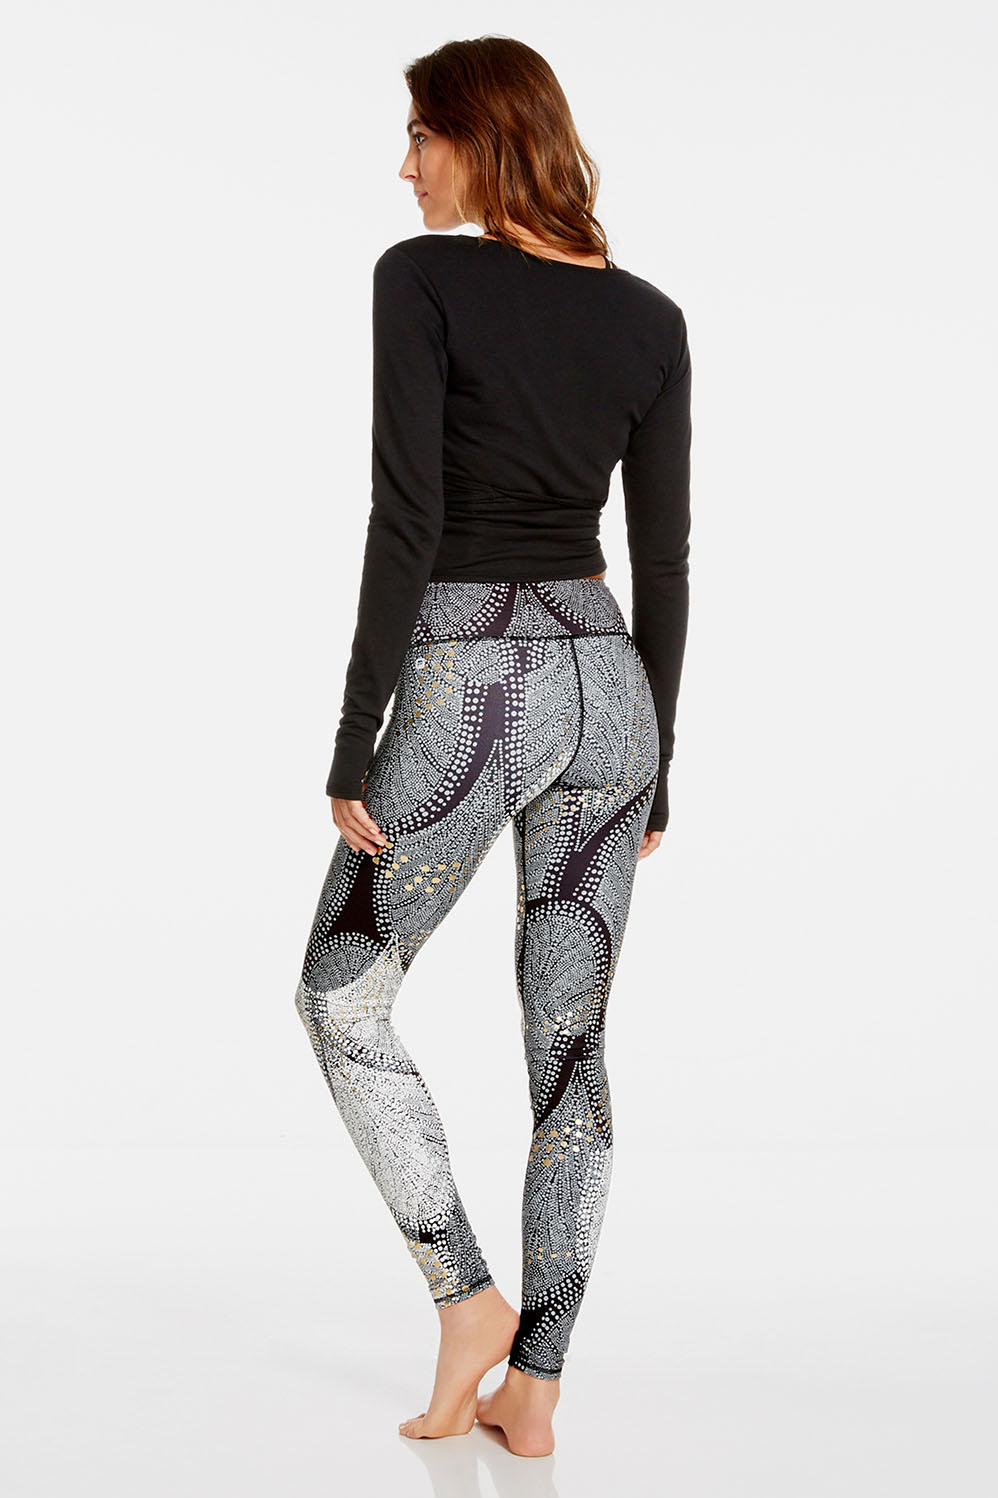 dfdbf2918942ec The initial sign up deal for Fabletics was awesome as I could get a full  outfit for I think $49.95 at the time. I stuck around and have since  purchased a ...